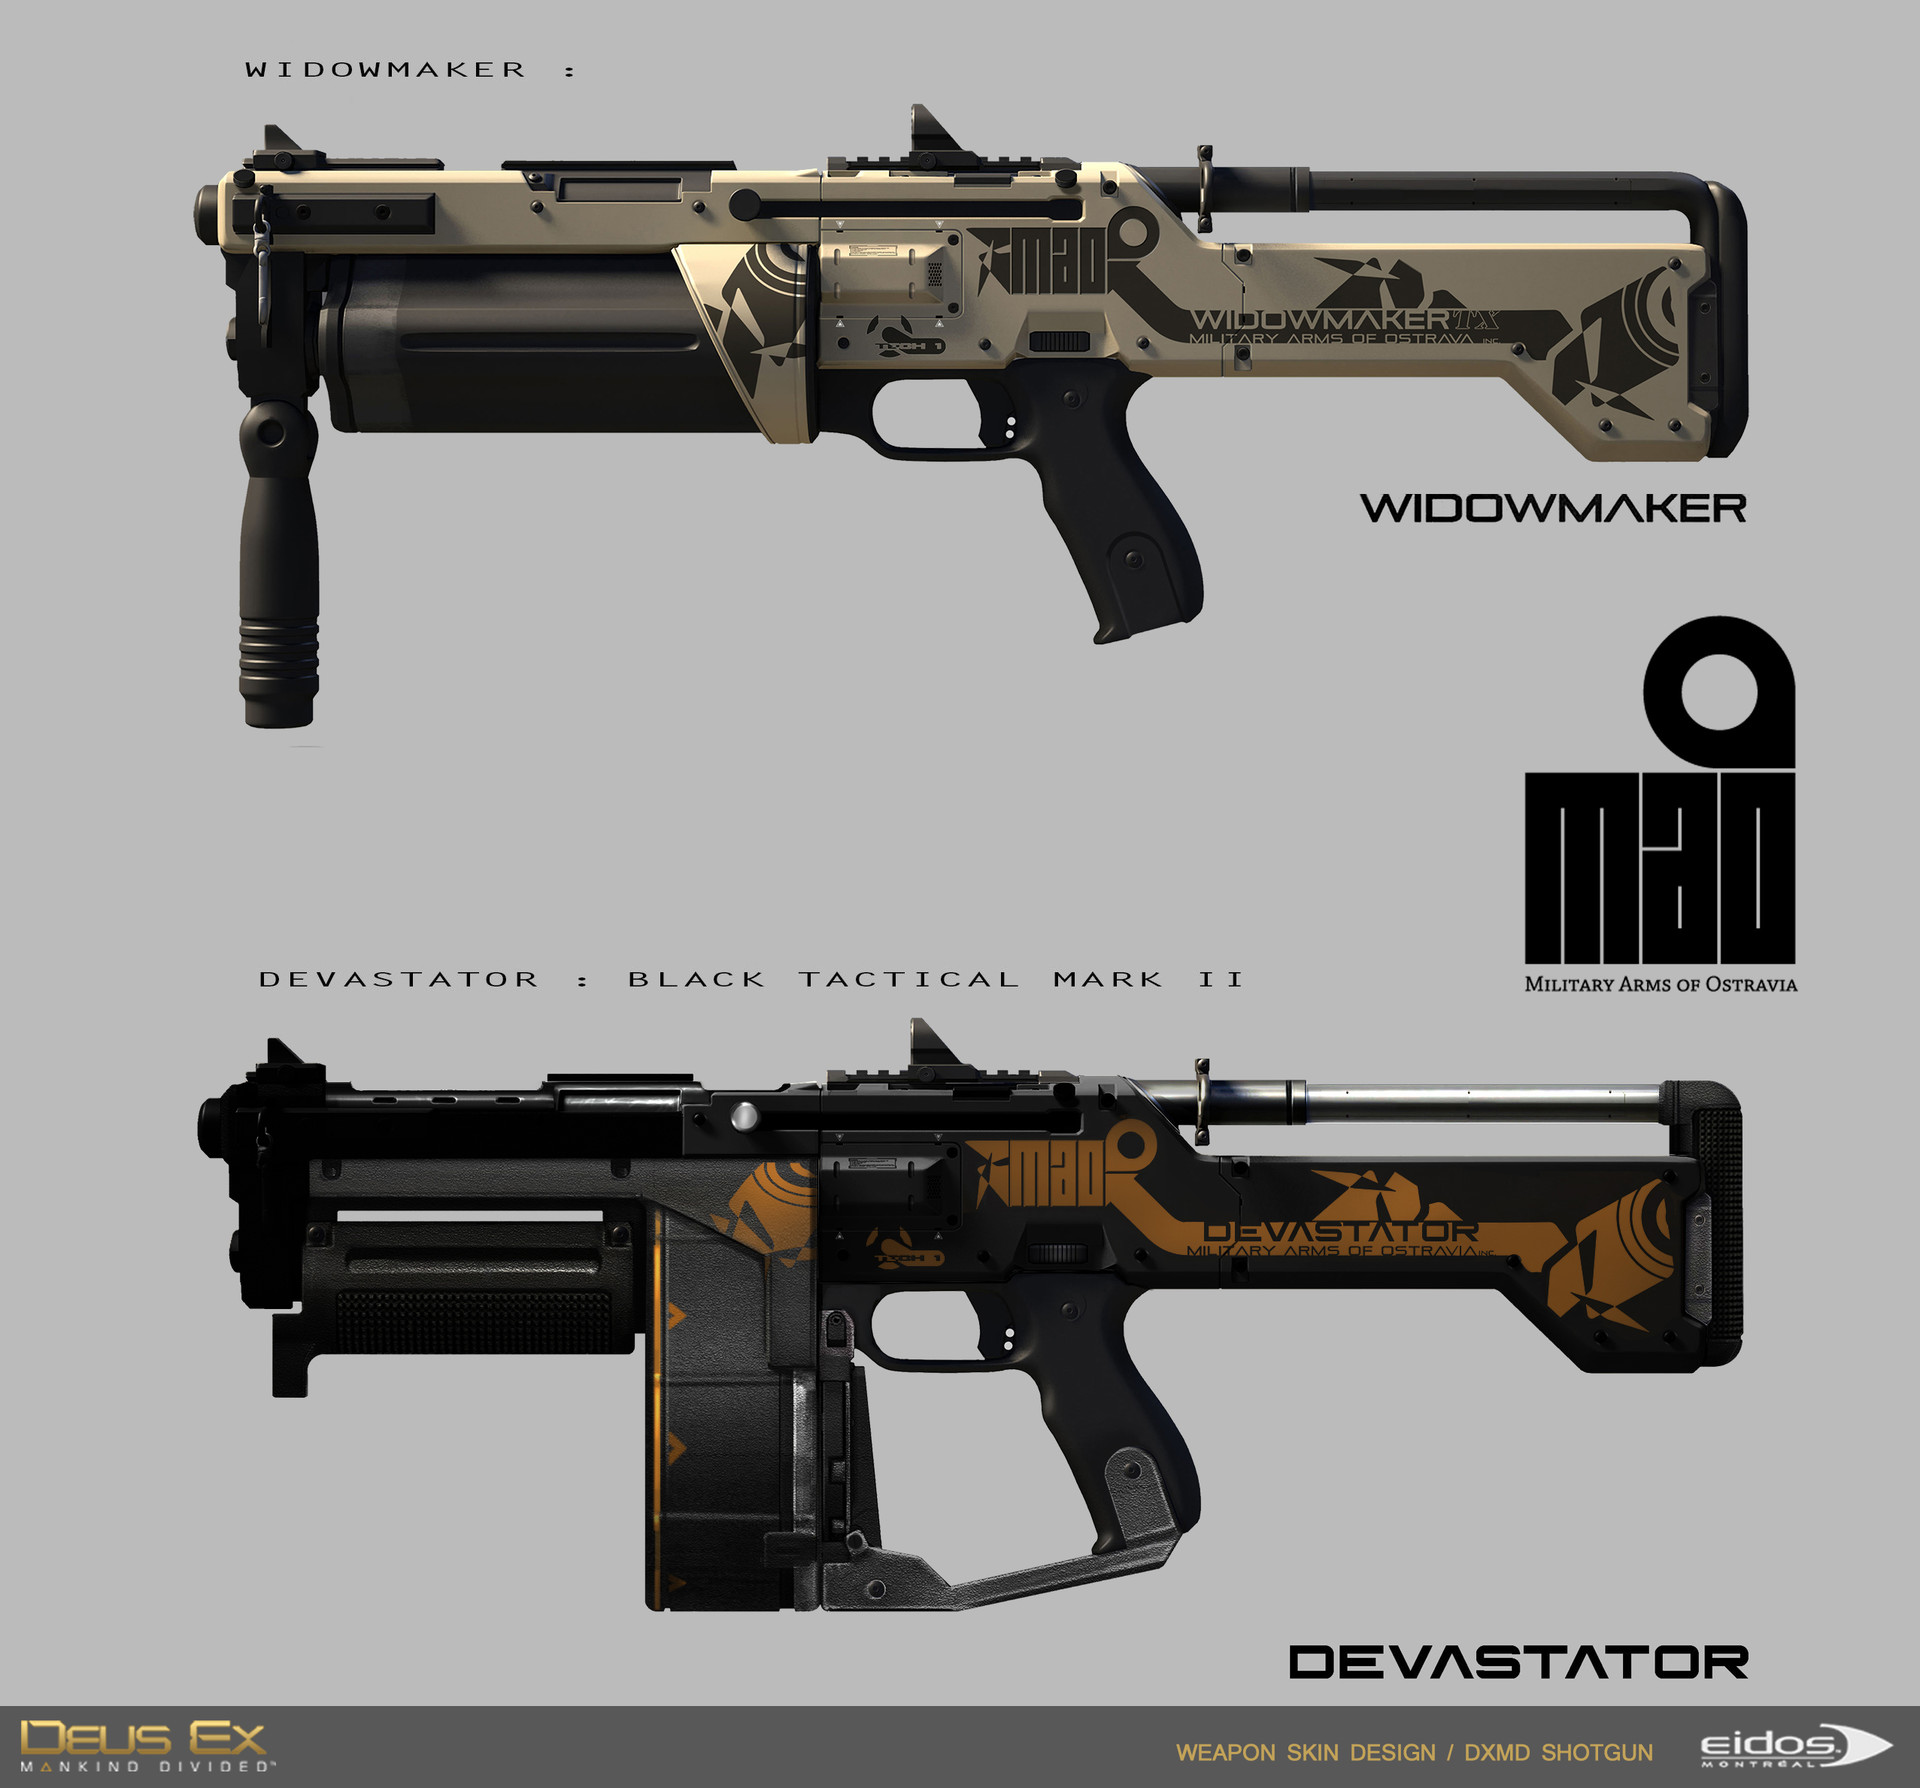 https://cdna.artstation.com/p/assets/images/images/003/725/416/large/martin-sabran-msab-widowmaker-devastator-shotgun-approved.jpg?1476838977